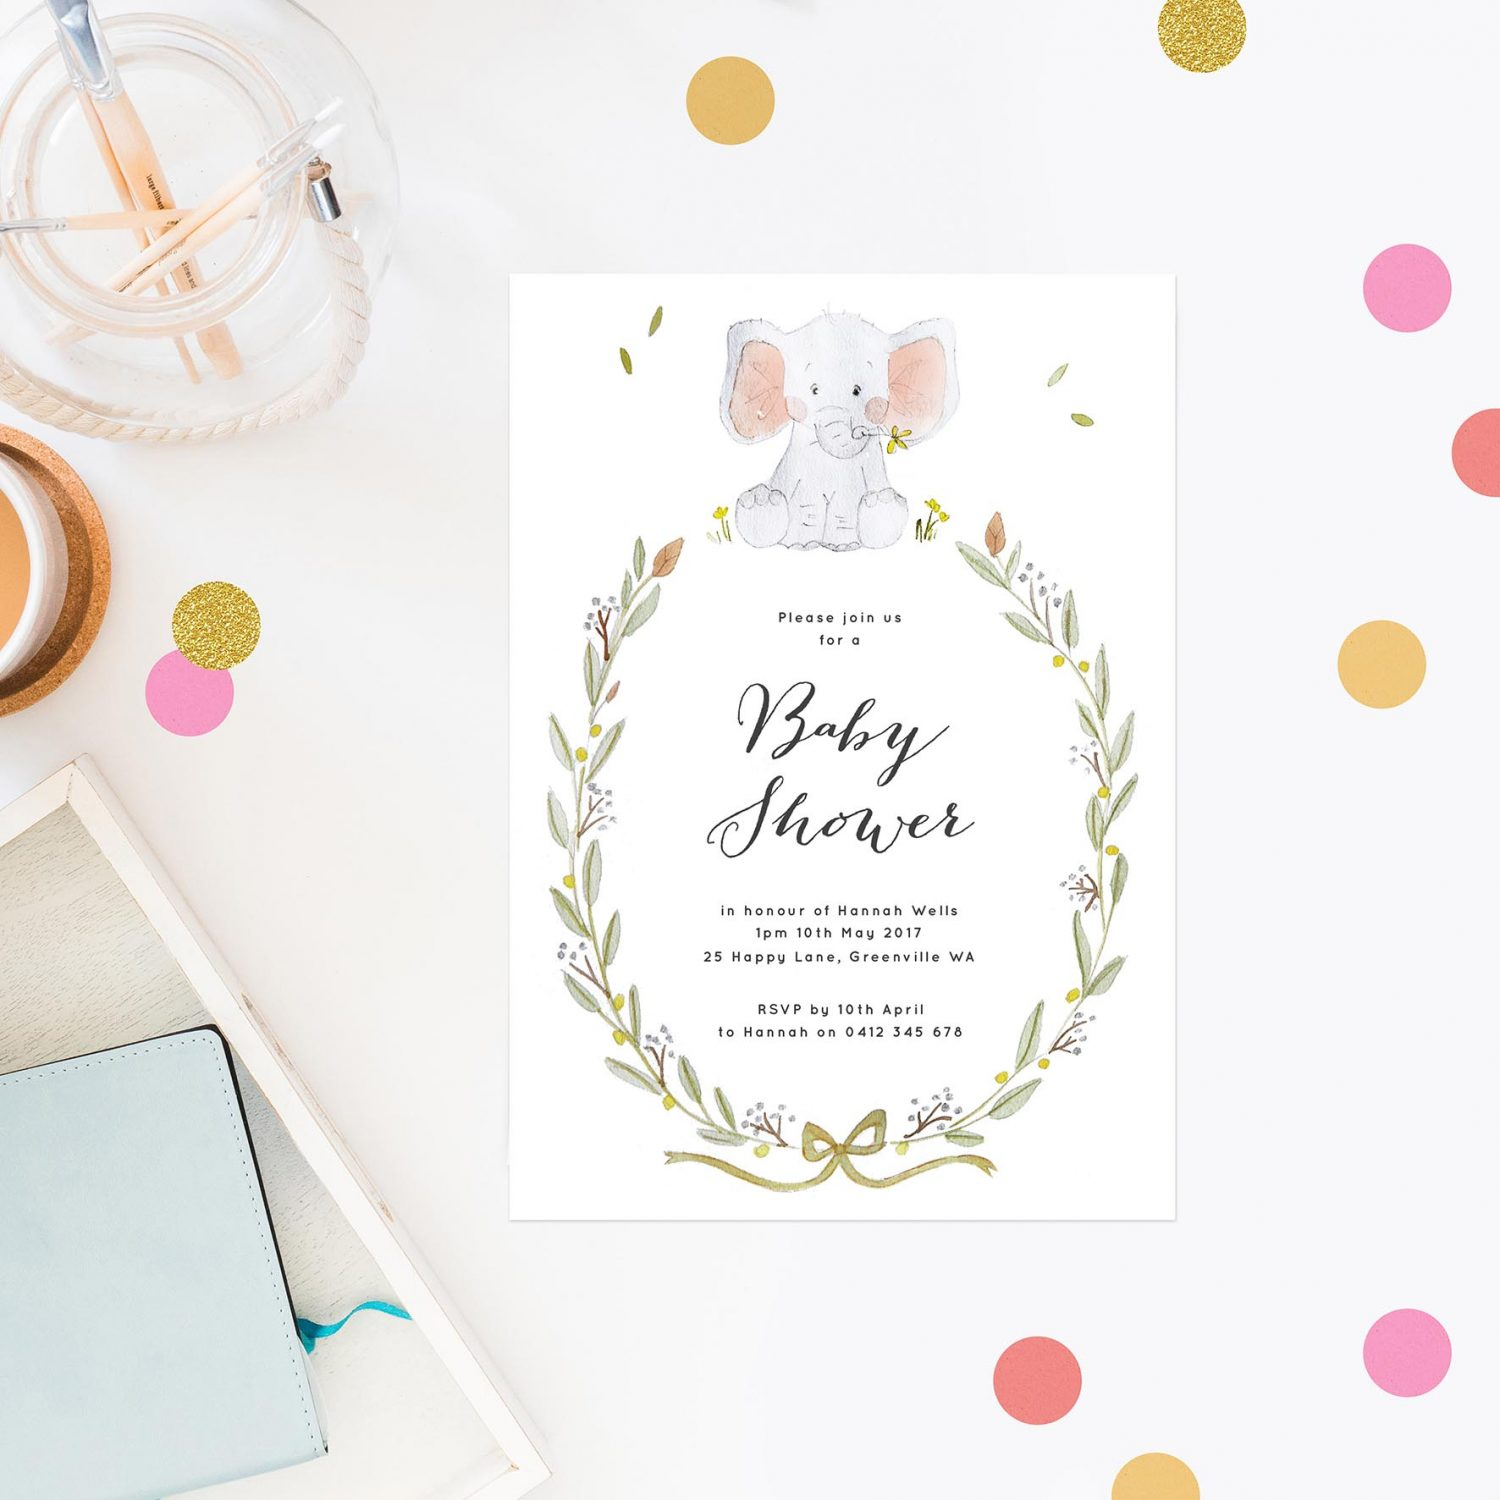 Watercolour elephant baby shower invitations sail and swan studio cute watercolour elephant baby shower invitations watercolour floral wreath sydney perth brisbane melbourne new zealand cute filmwisefo